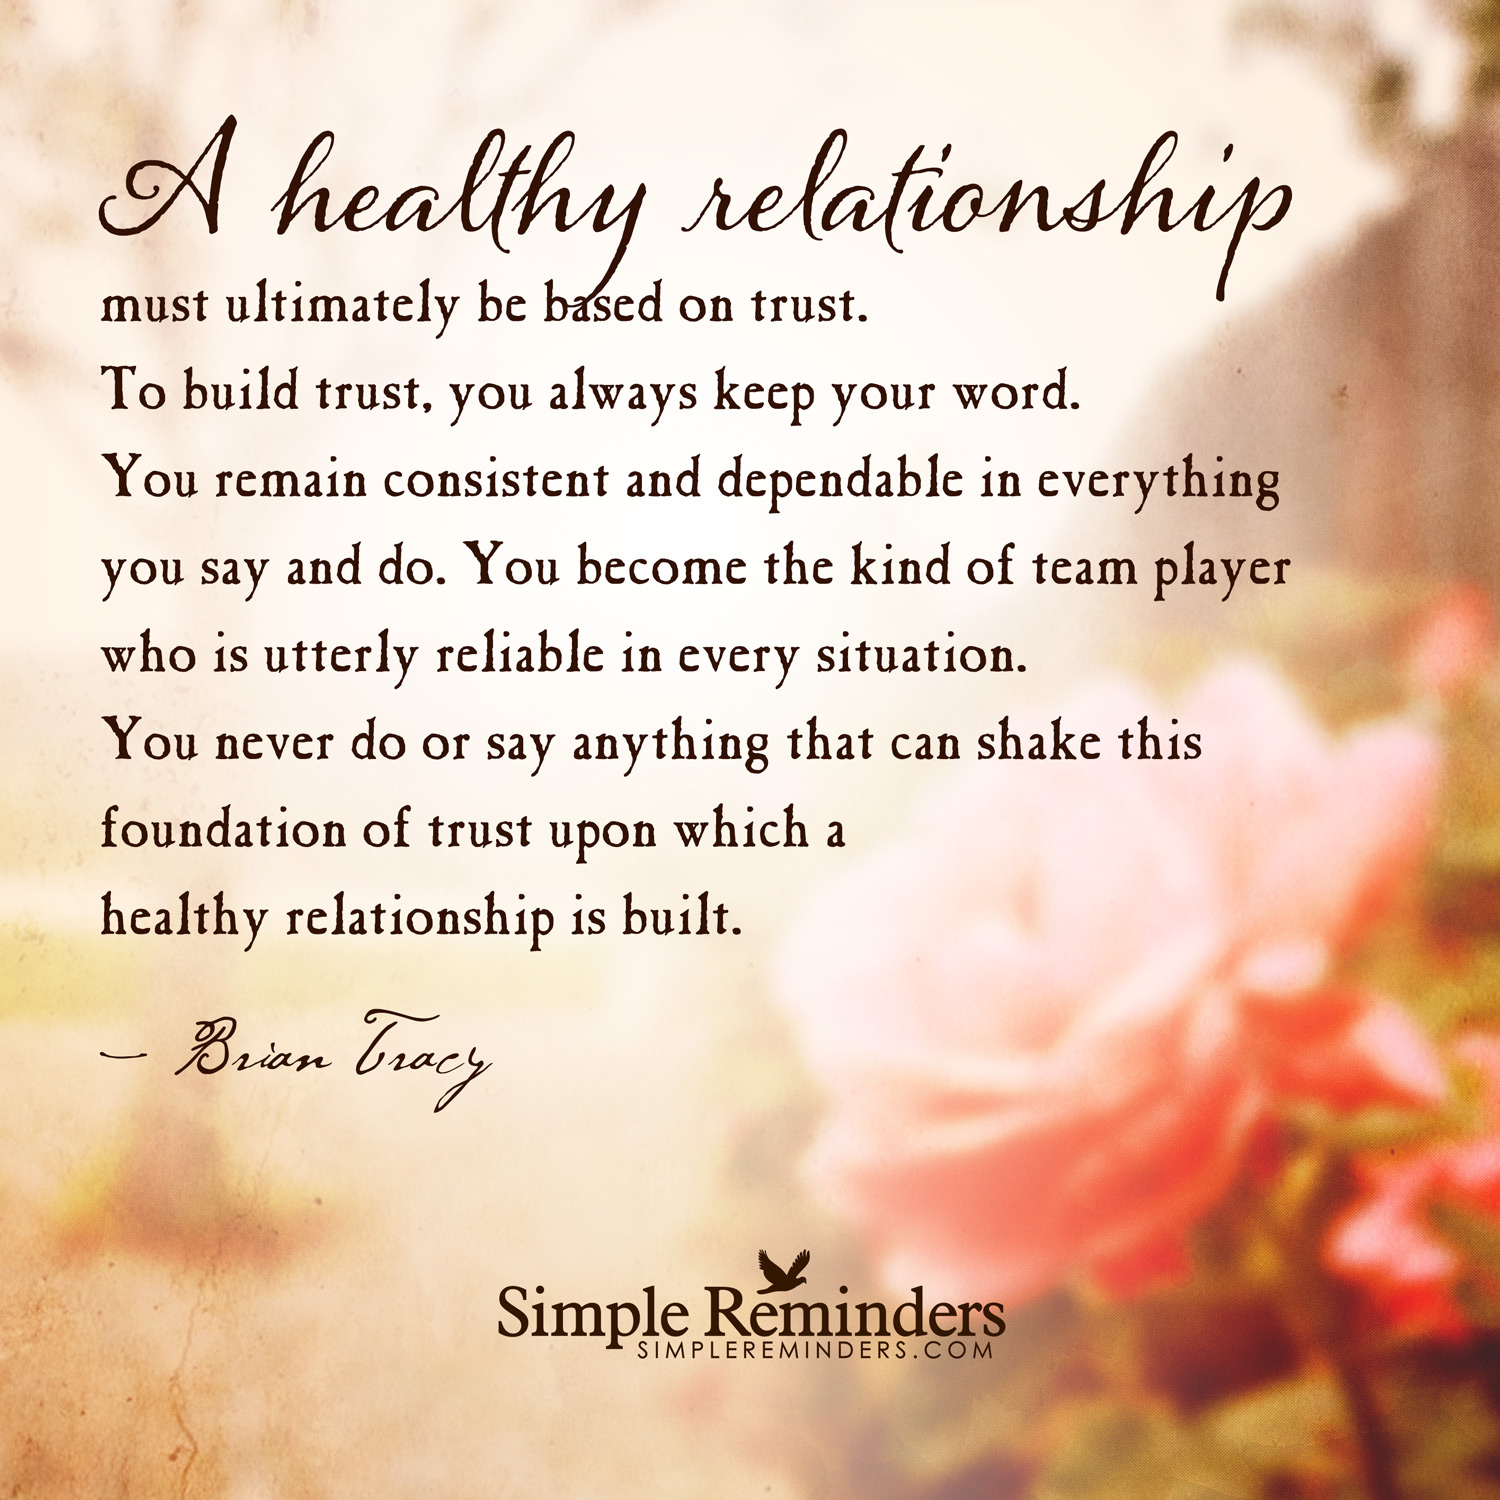 Quotes About Healthy Relationships. QuotesGram